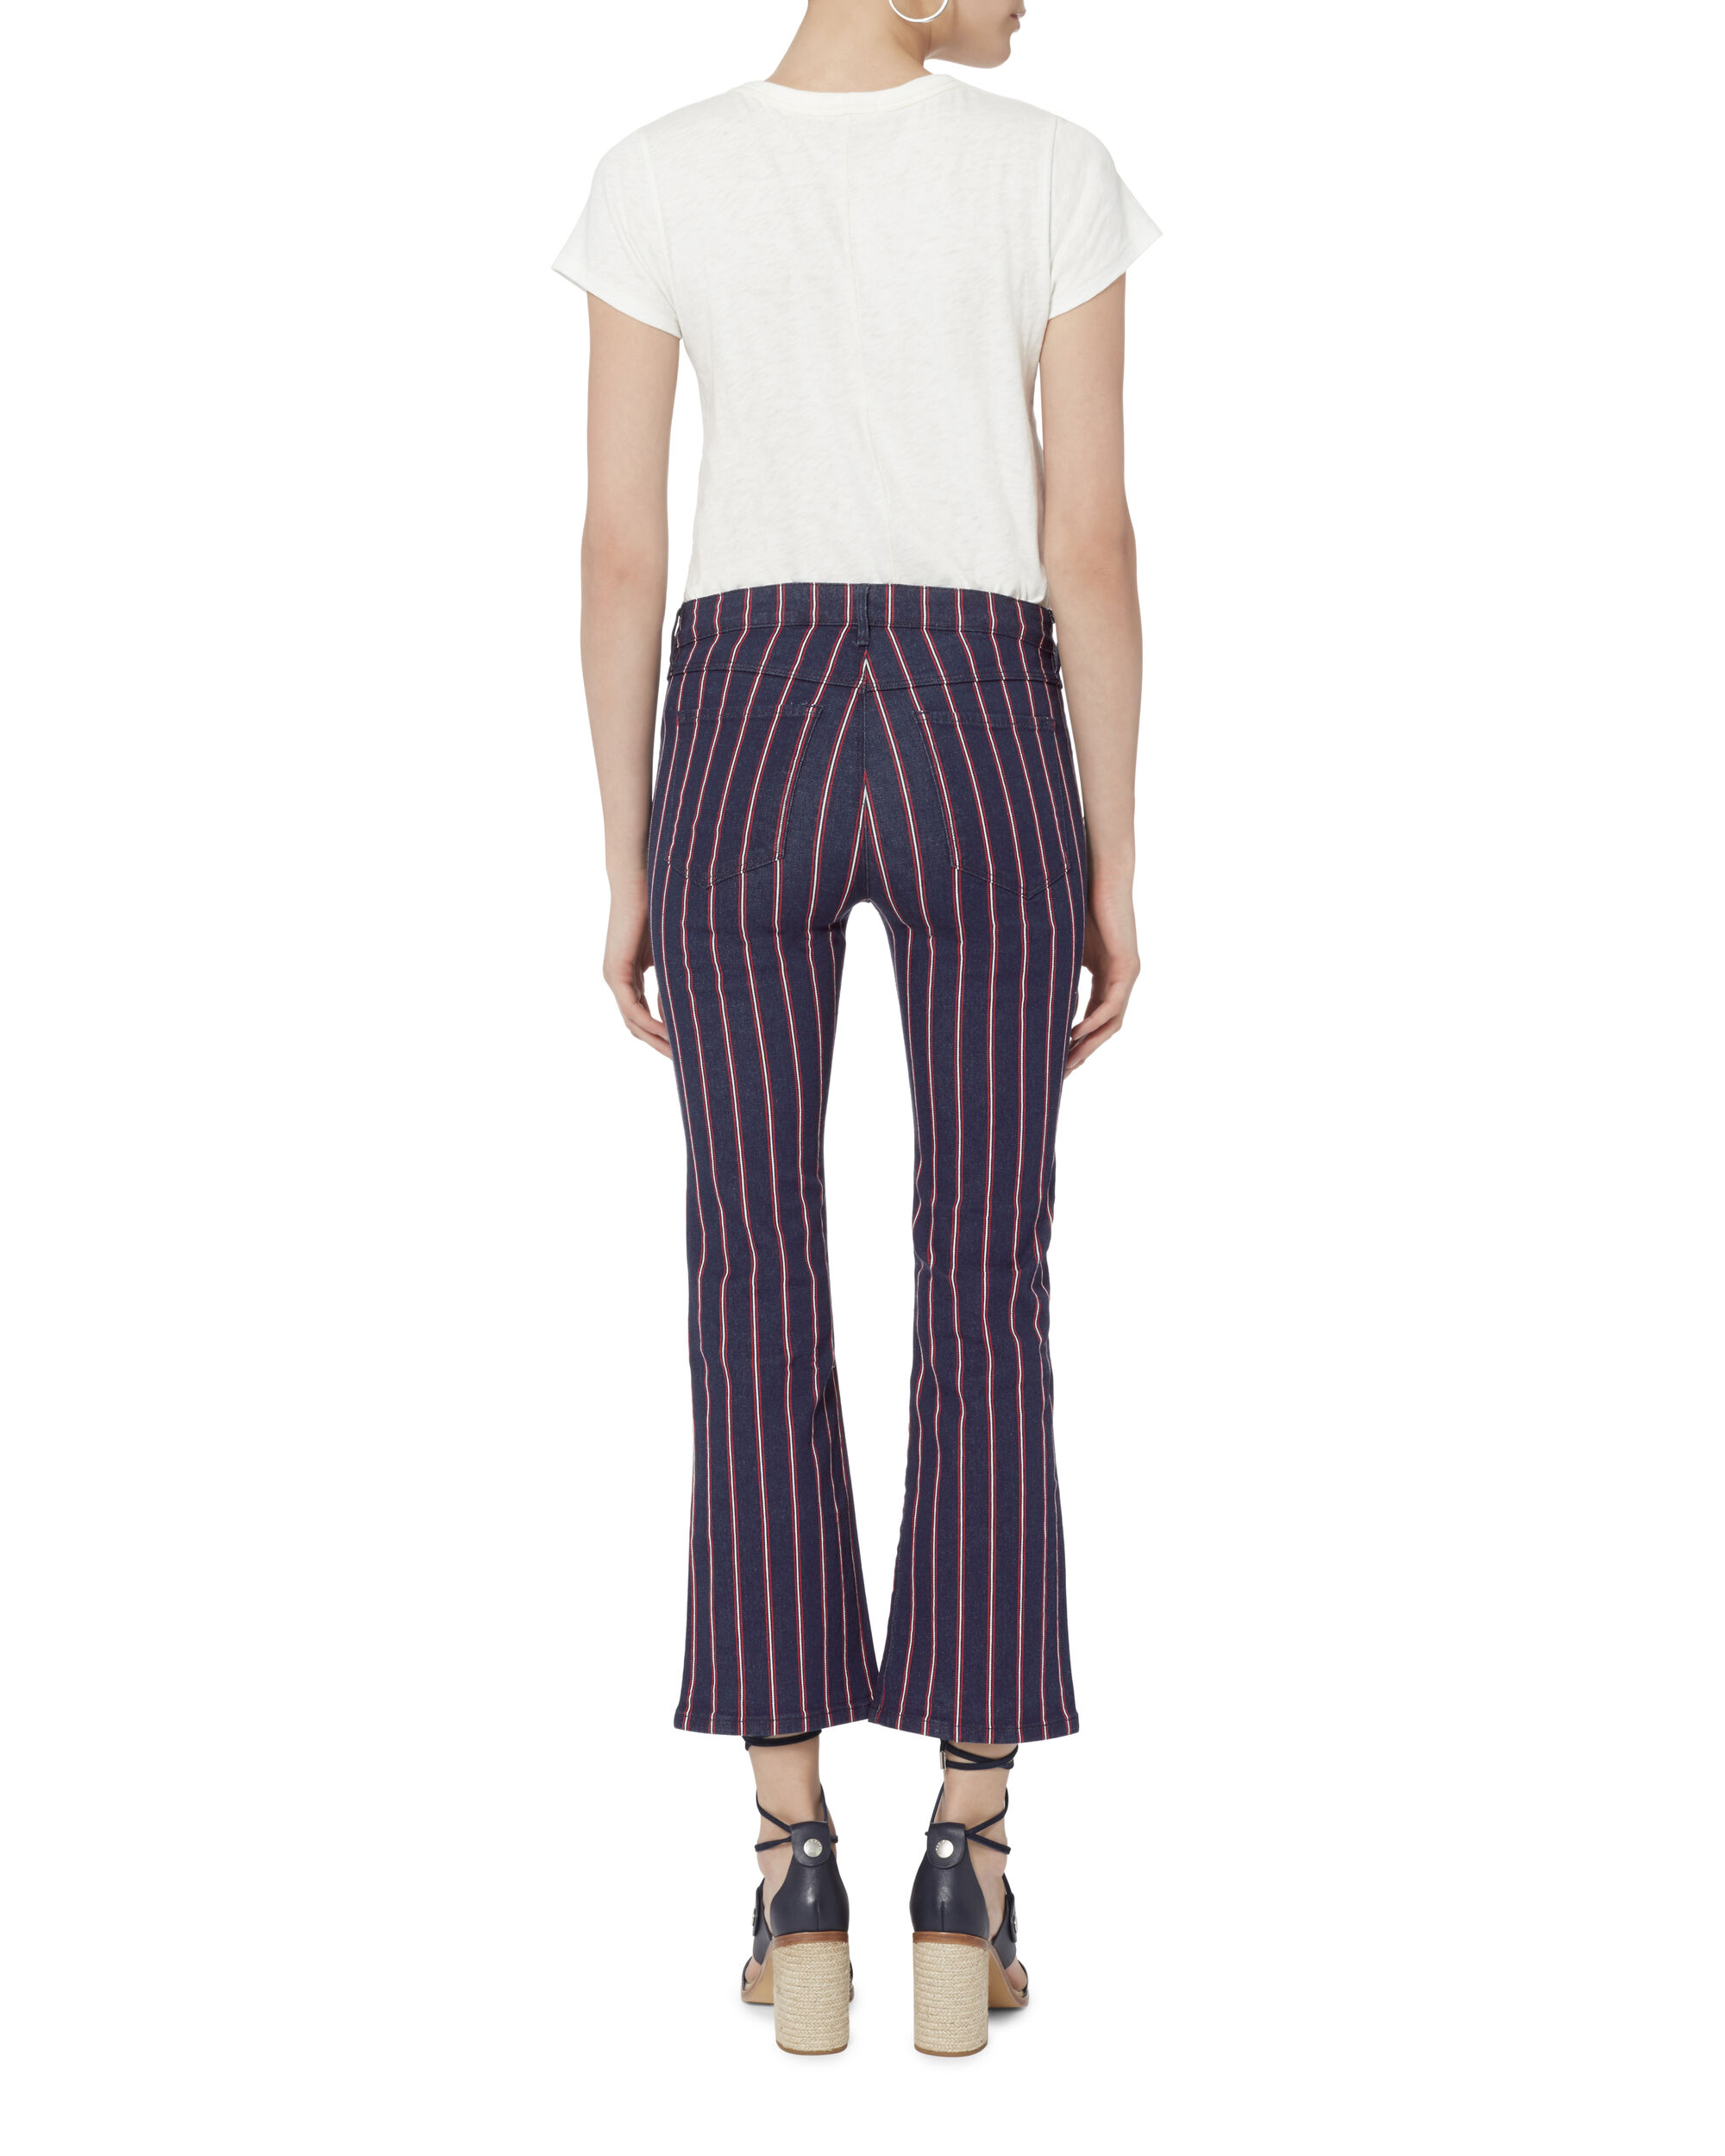 Tabby Striped Crop Flare Jeans , PATTERN, hi-res